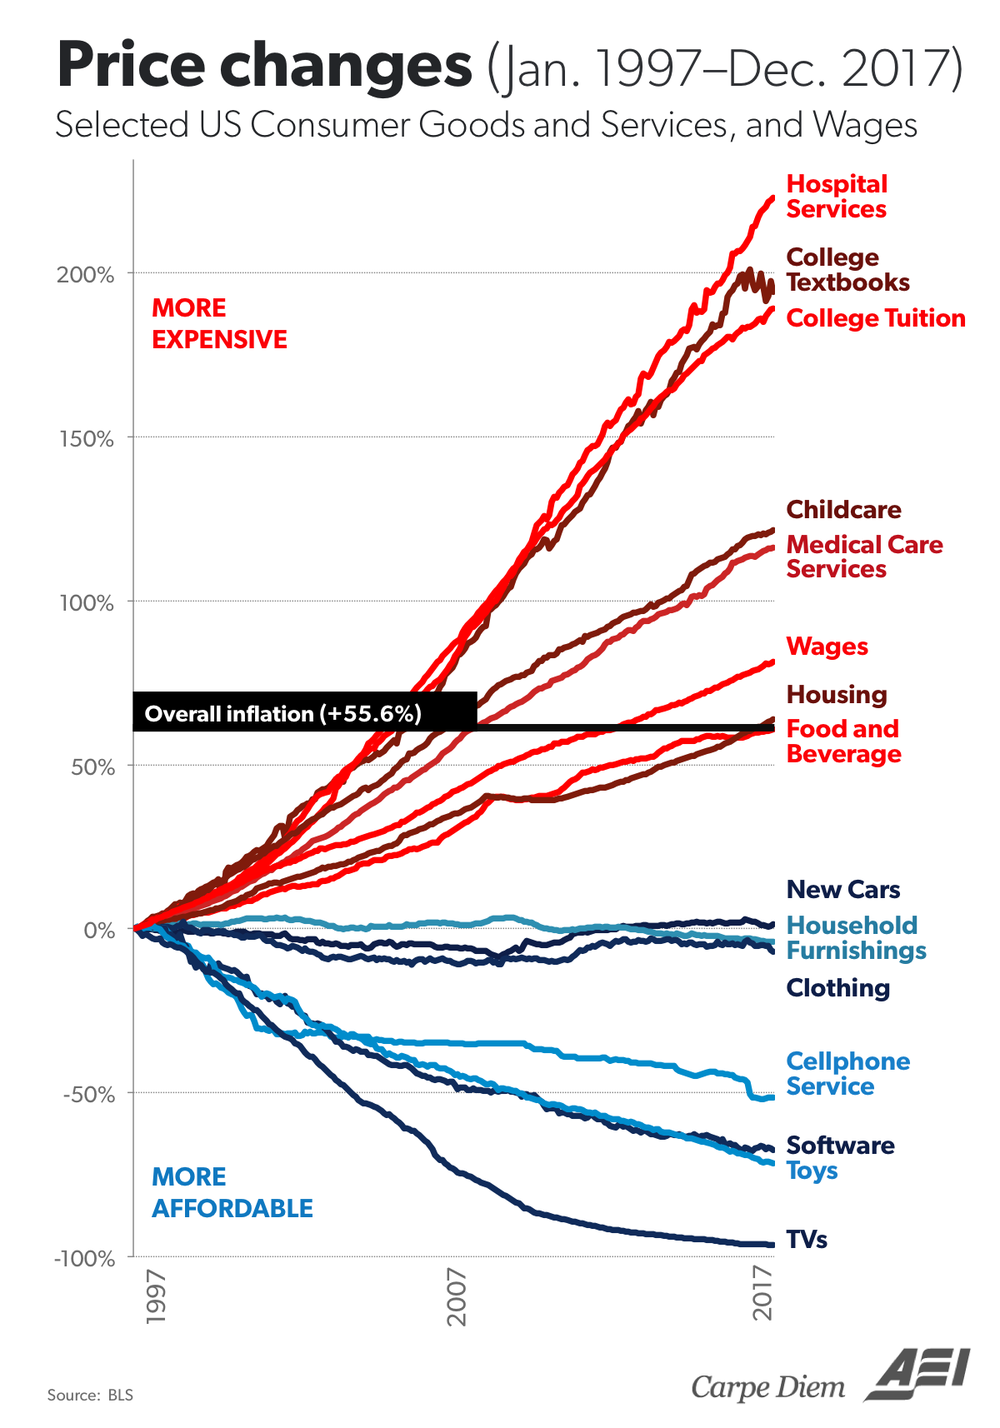 Price changes of Consumer Goods with data from the US Bureau of Labor Statistics compiled by Mark J. Perry and published on aei.org.